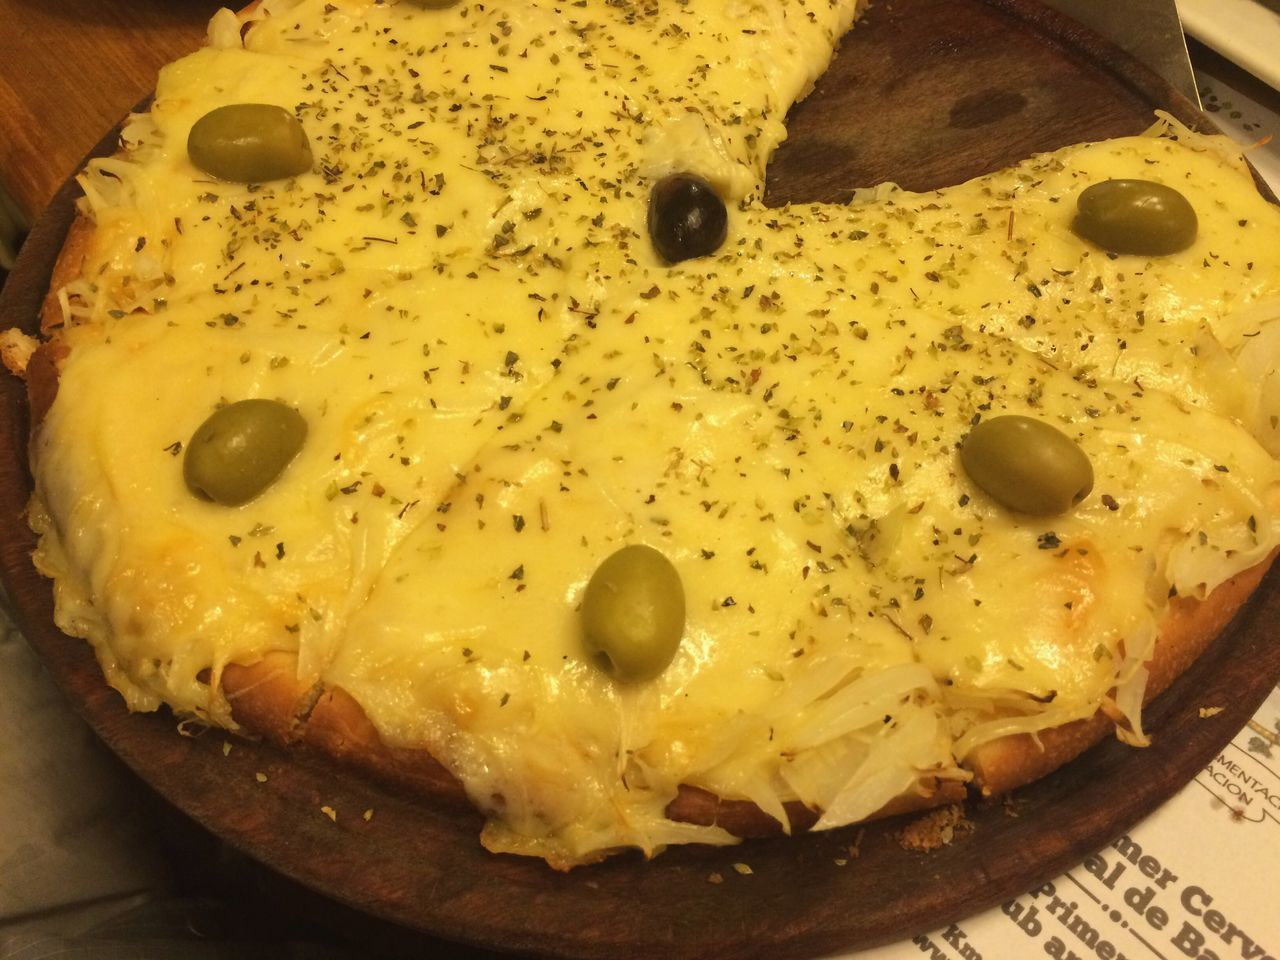 Pizza Pizzatime Bariloche Onion Pizza Cheese Food Olives